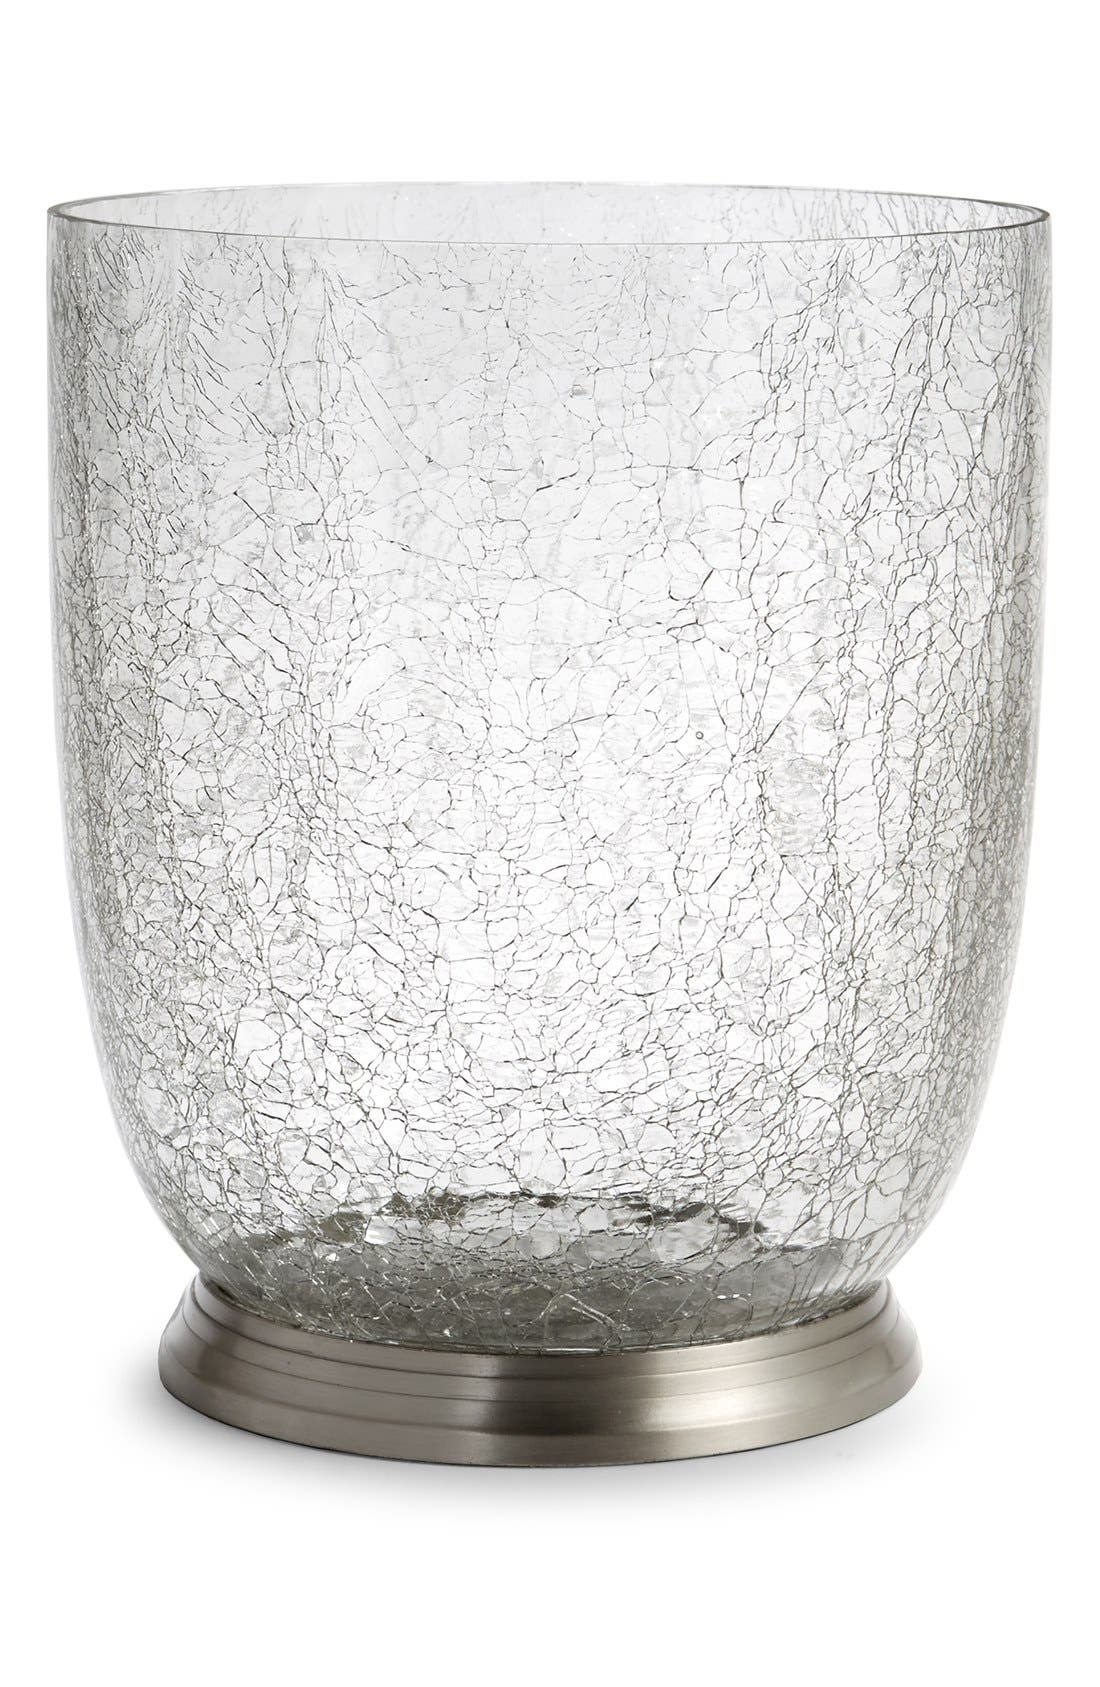 Alternate Image 1 Selected - Paradigm Trends 'Heirloom Crackle' Wastebasket